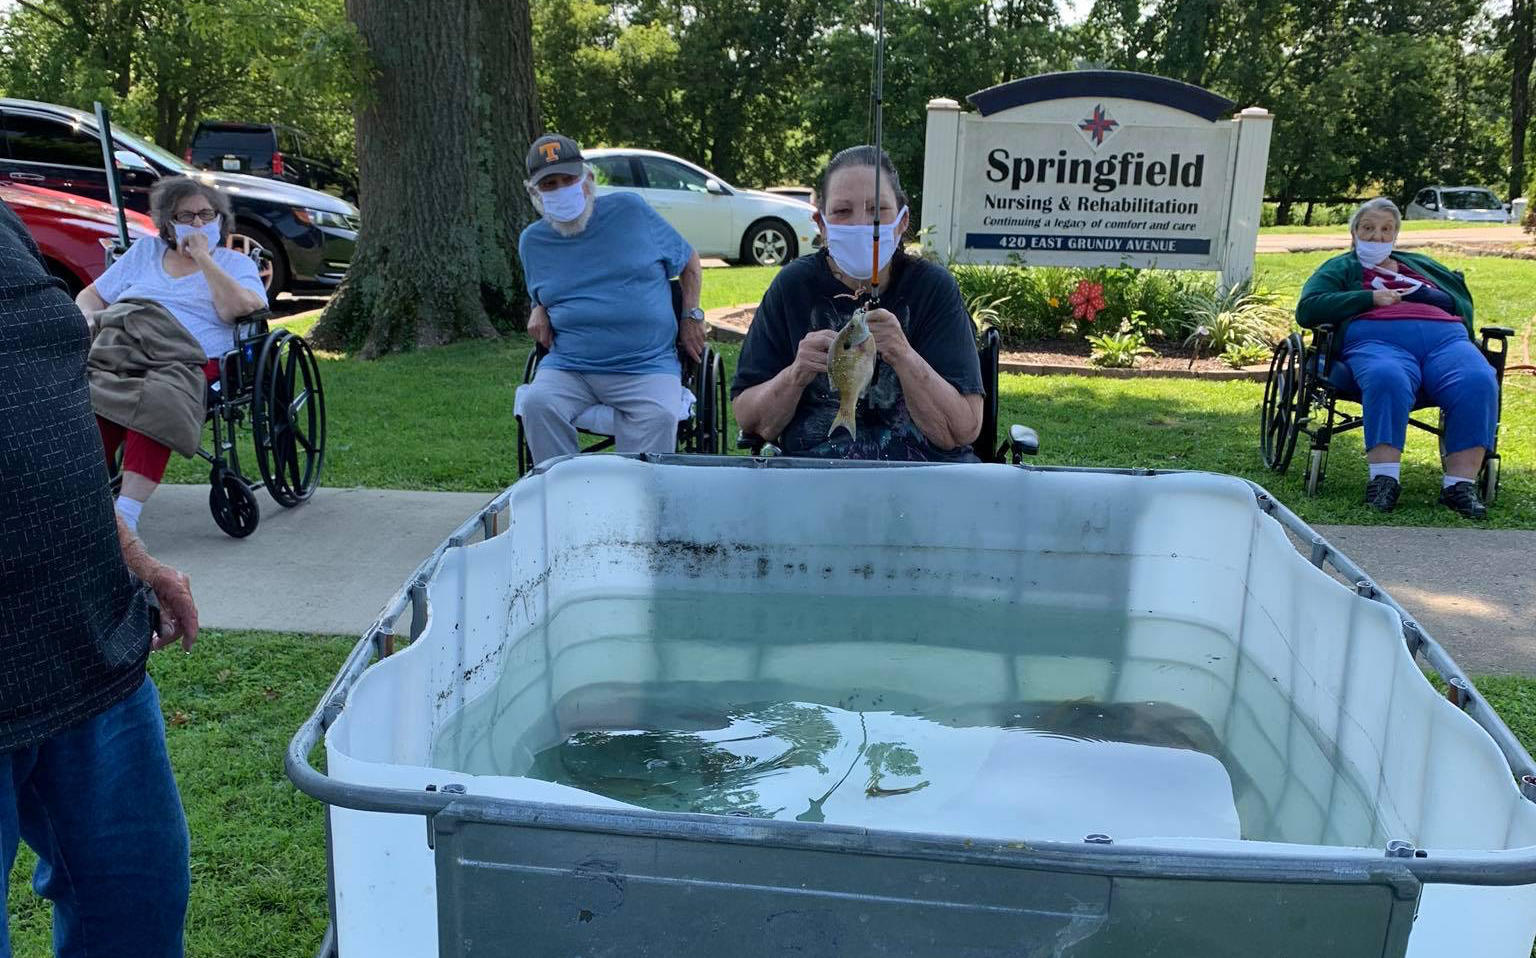 nursing-home-fishing-7.jpg